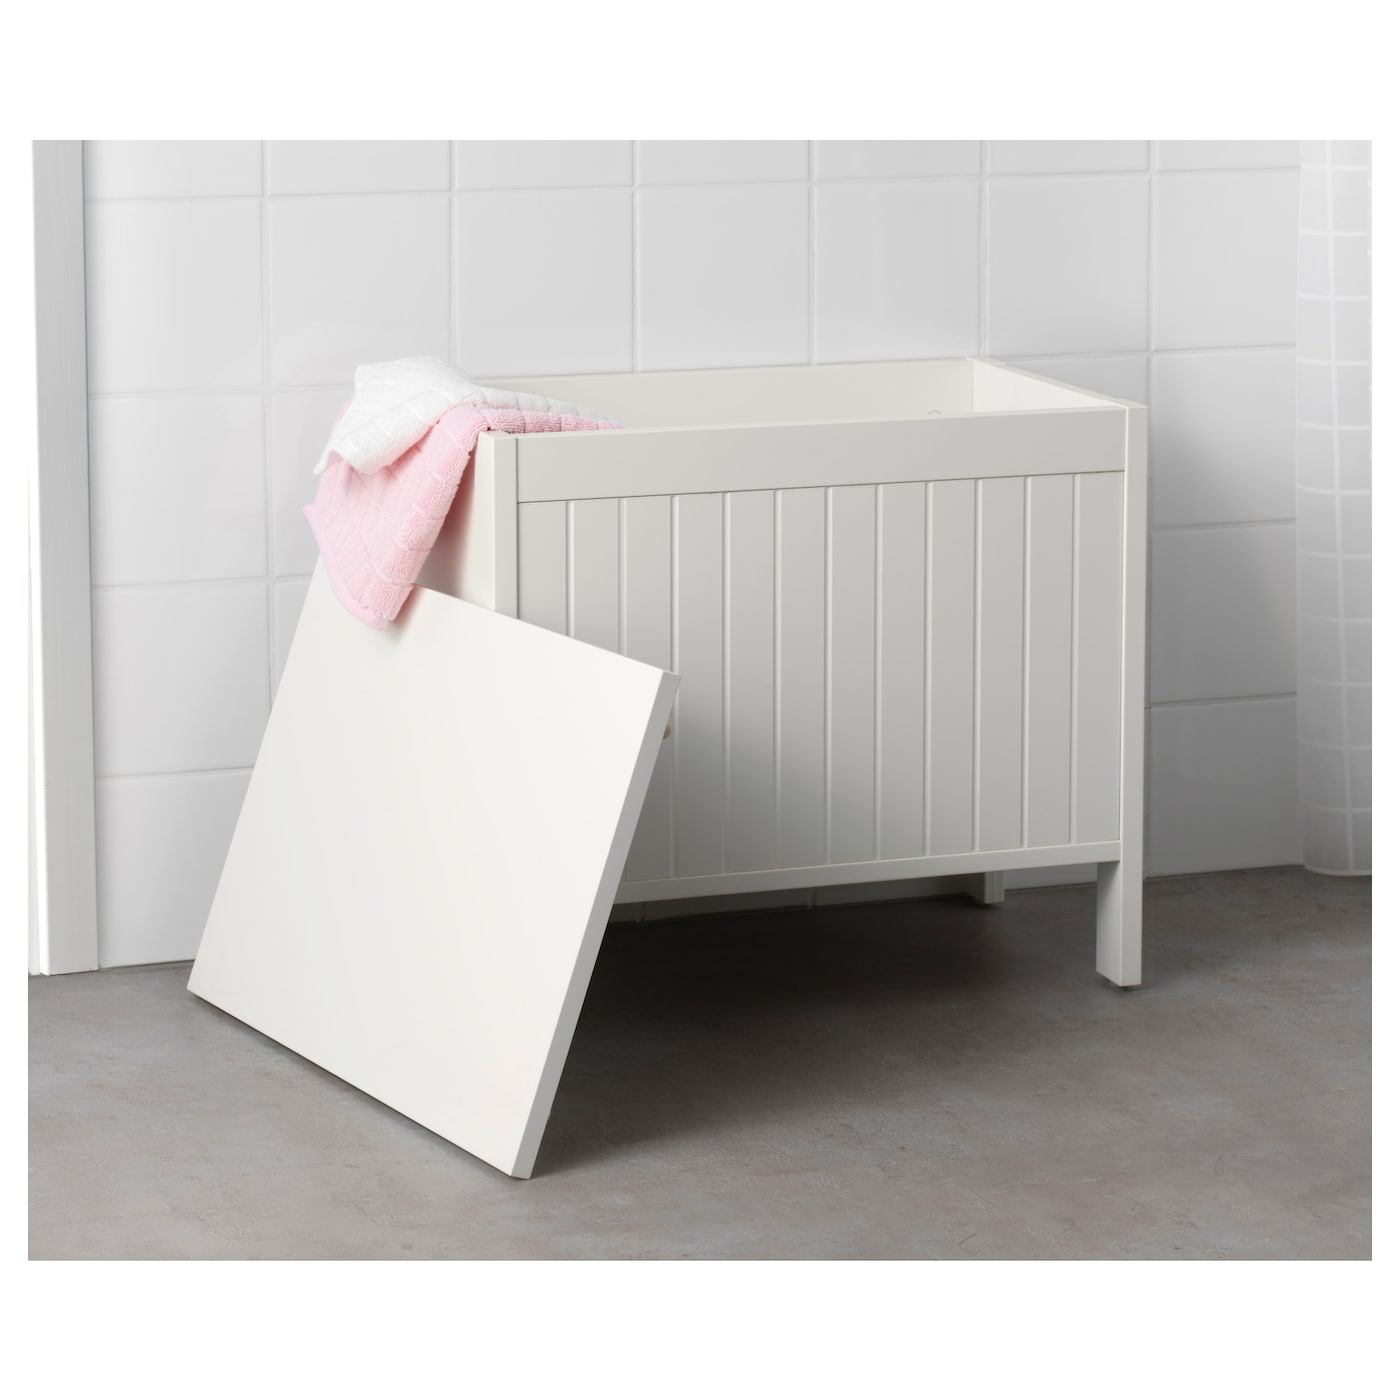 Silver n storage bench white ikea Storage bench ikea